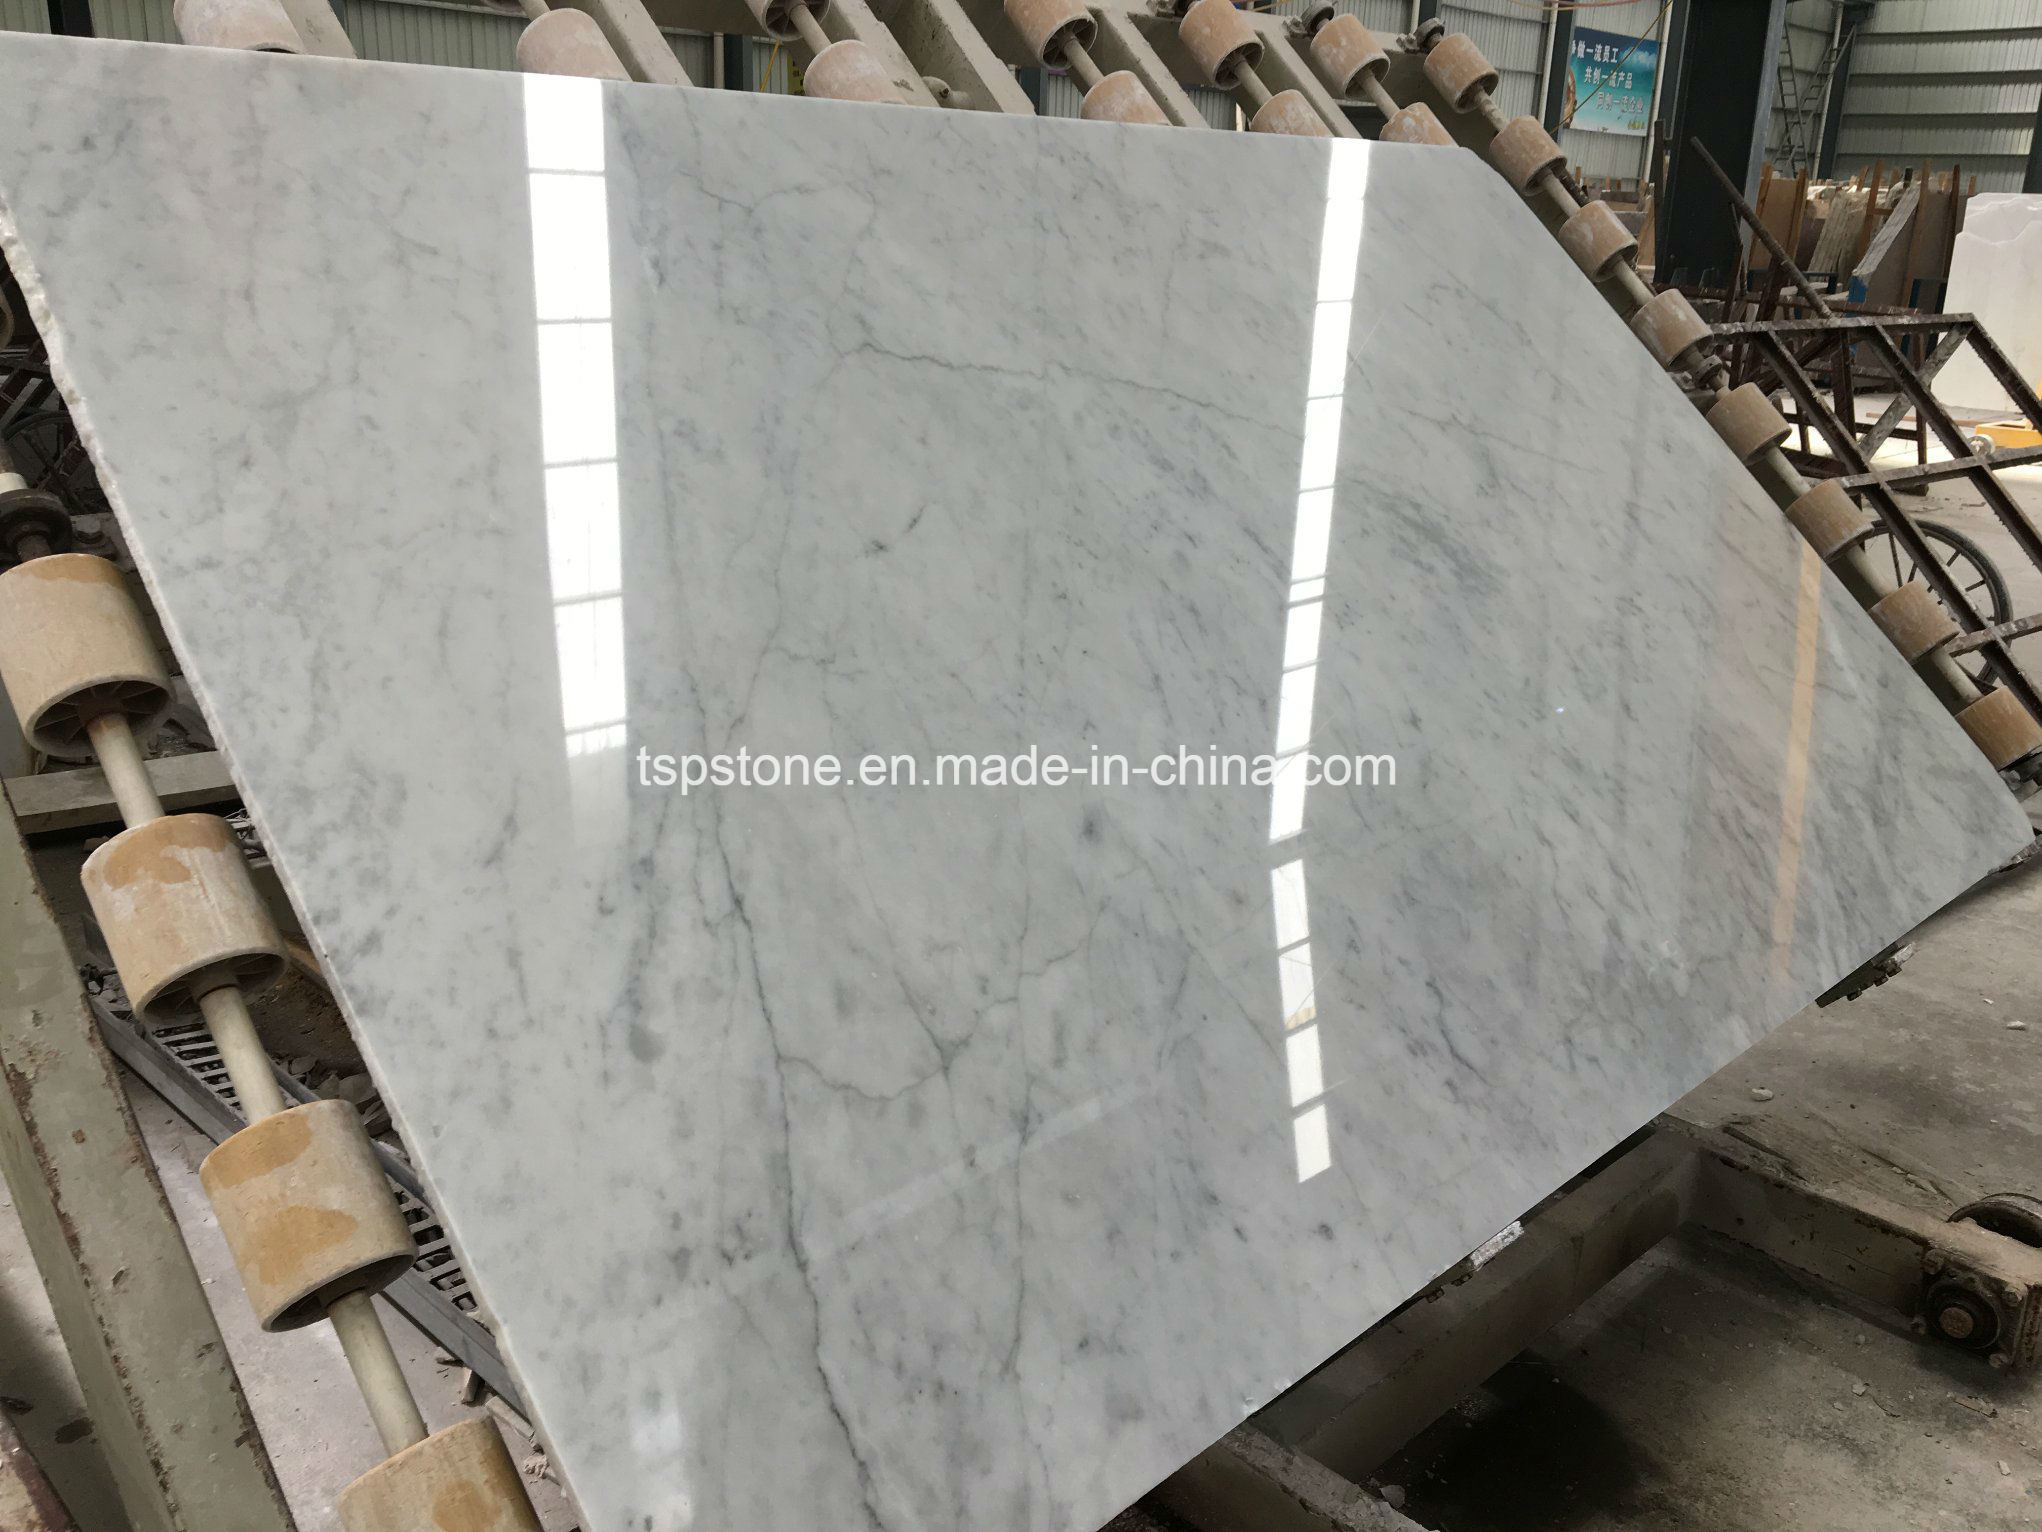 China Italian Bianco Carrara White Marble Slabs With Cheap Price Photos Pictures Made In China Com